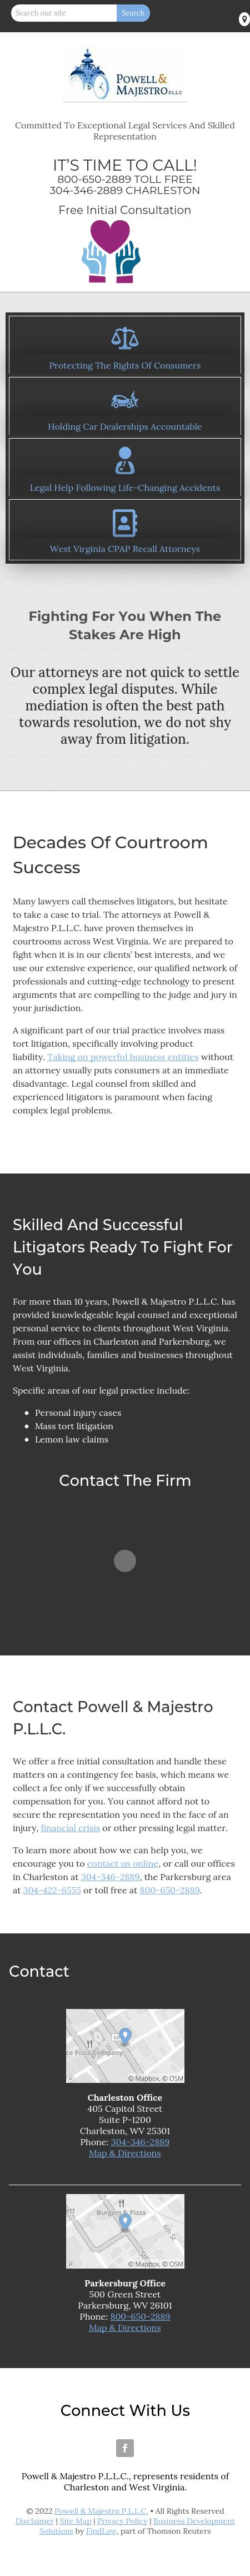 Powell & Majestro P.L.L.C. - Charleston WV Lawyers